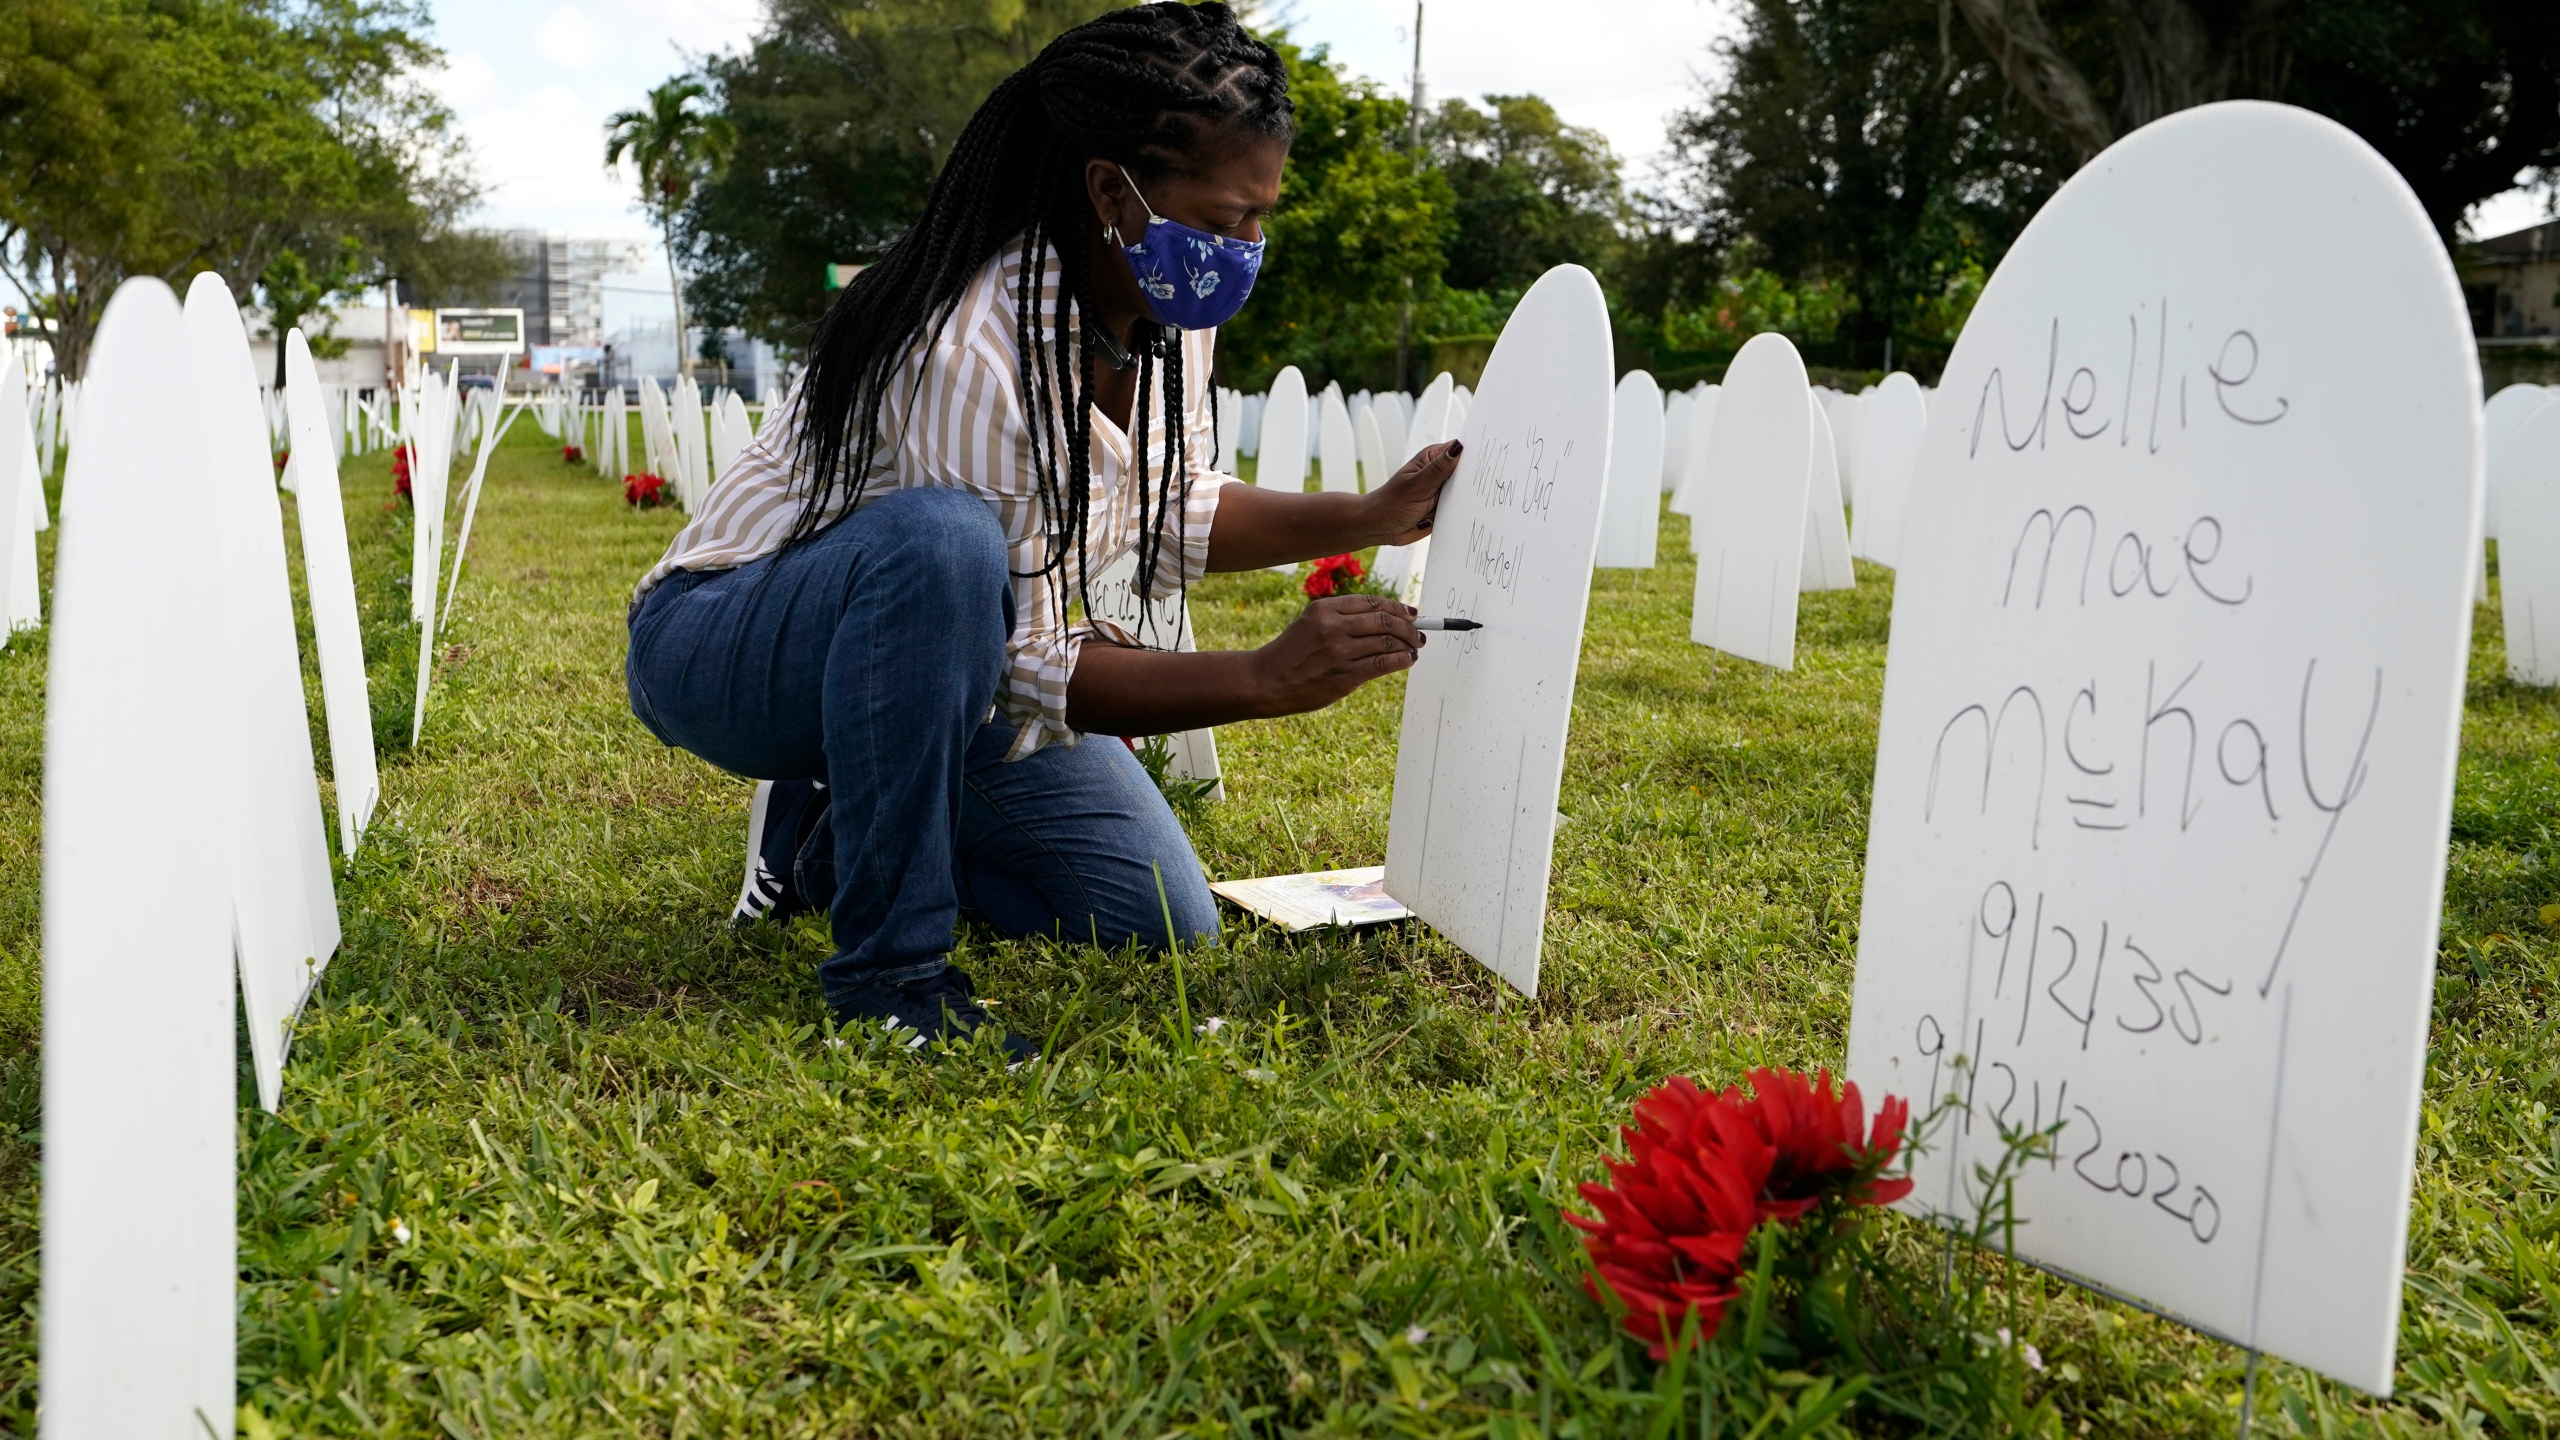 """In this Nov. 24, 2020, file photo, Joanna Moore writes a tribute to her cousin Wilton """"Bud"""" Mitchell who died of COVID-19 at a symbolic cemetery created to remember and honor lives lost to COVID-19, in the Liberty City neighborhood of Miami. The U.S. death toll from COVID-19 has topped 600,000, even as the vaccination drive has drastically slashed daily cases and deaths and allowed the country to emerge from the gloom. (AP Photo/Lynne Sladky, File)"""